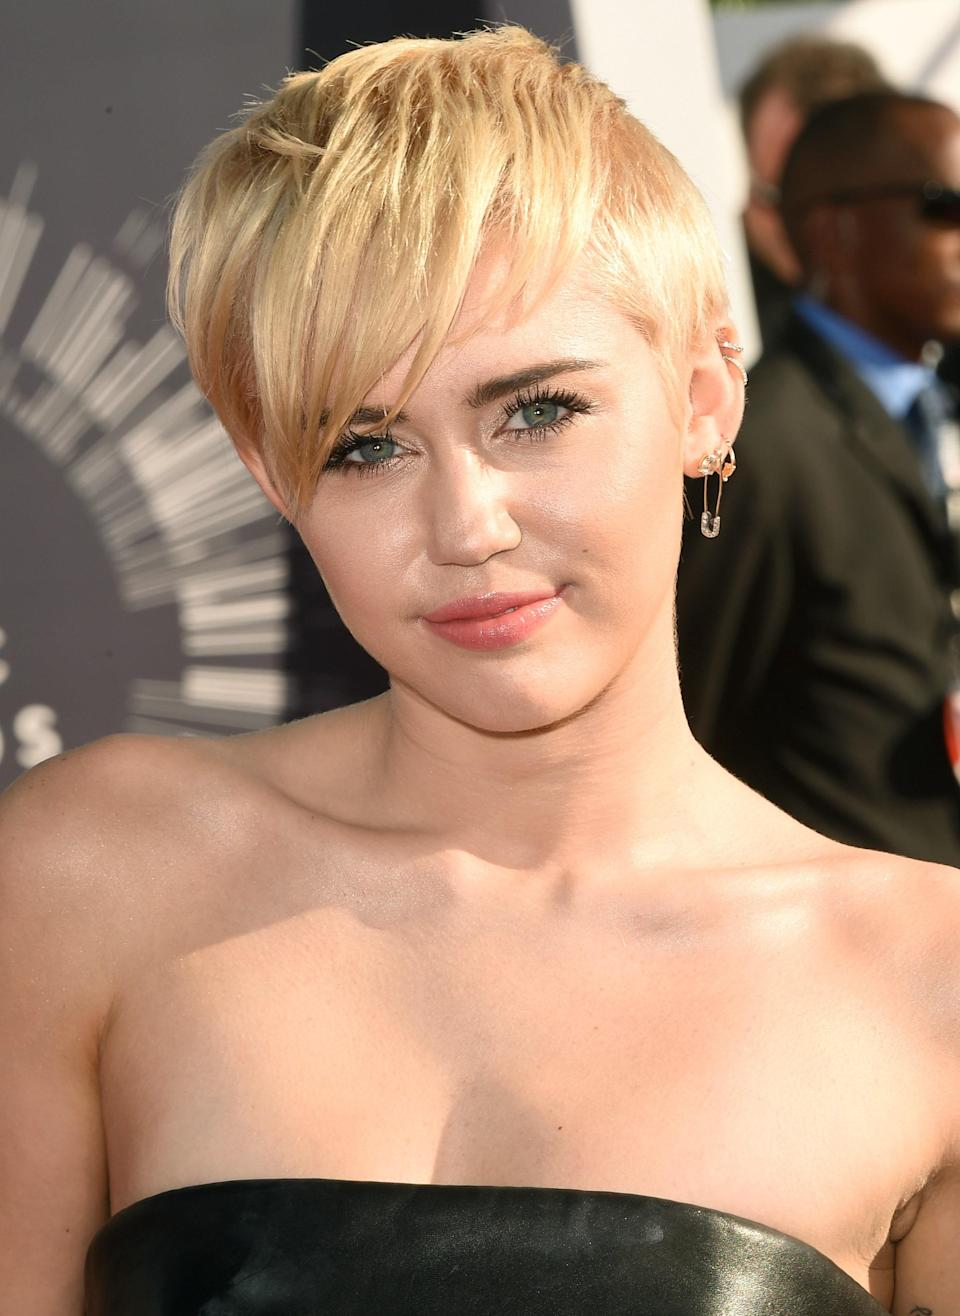 Just one year before hosting the 2015 ceremony with fluorescent lashes and neon hair, Miley showed off her softer side with a sleek short 'do and no-makeup makeup.